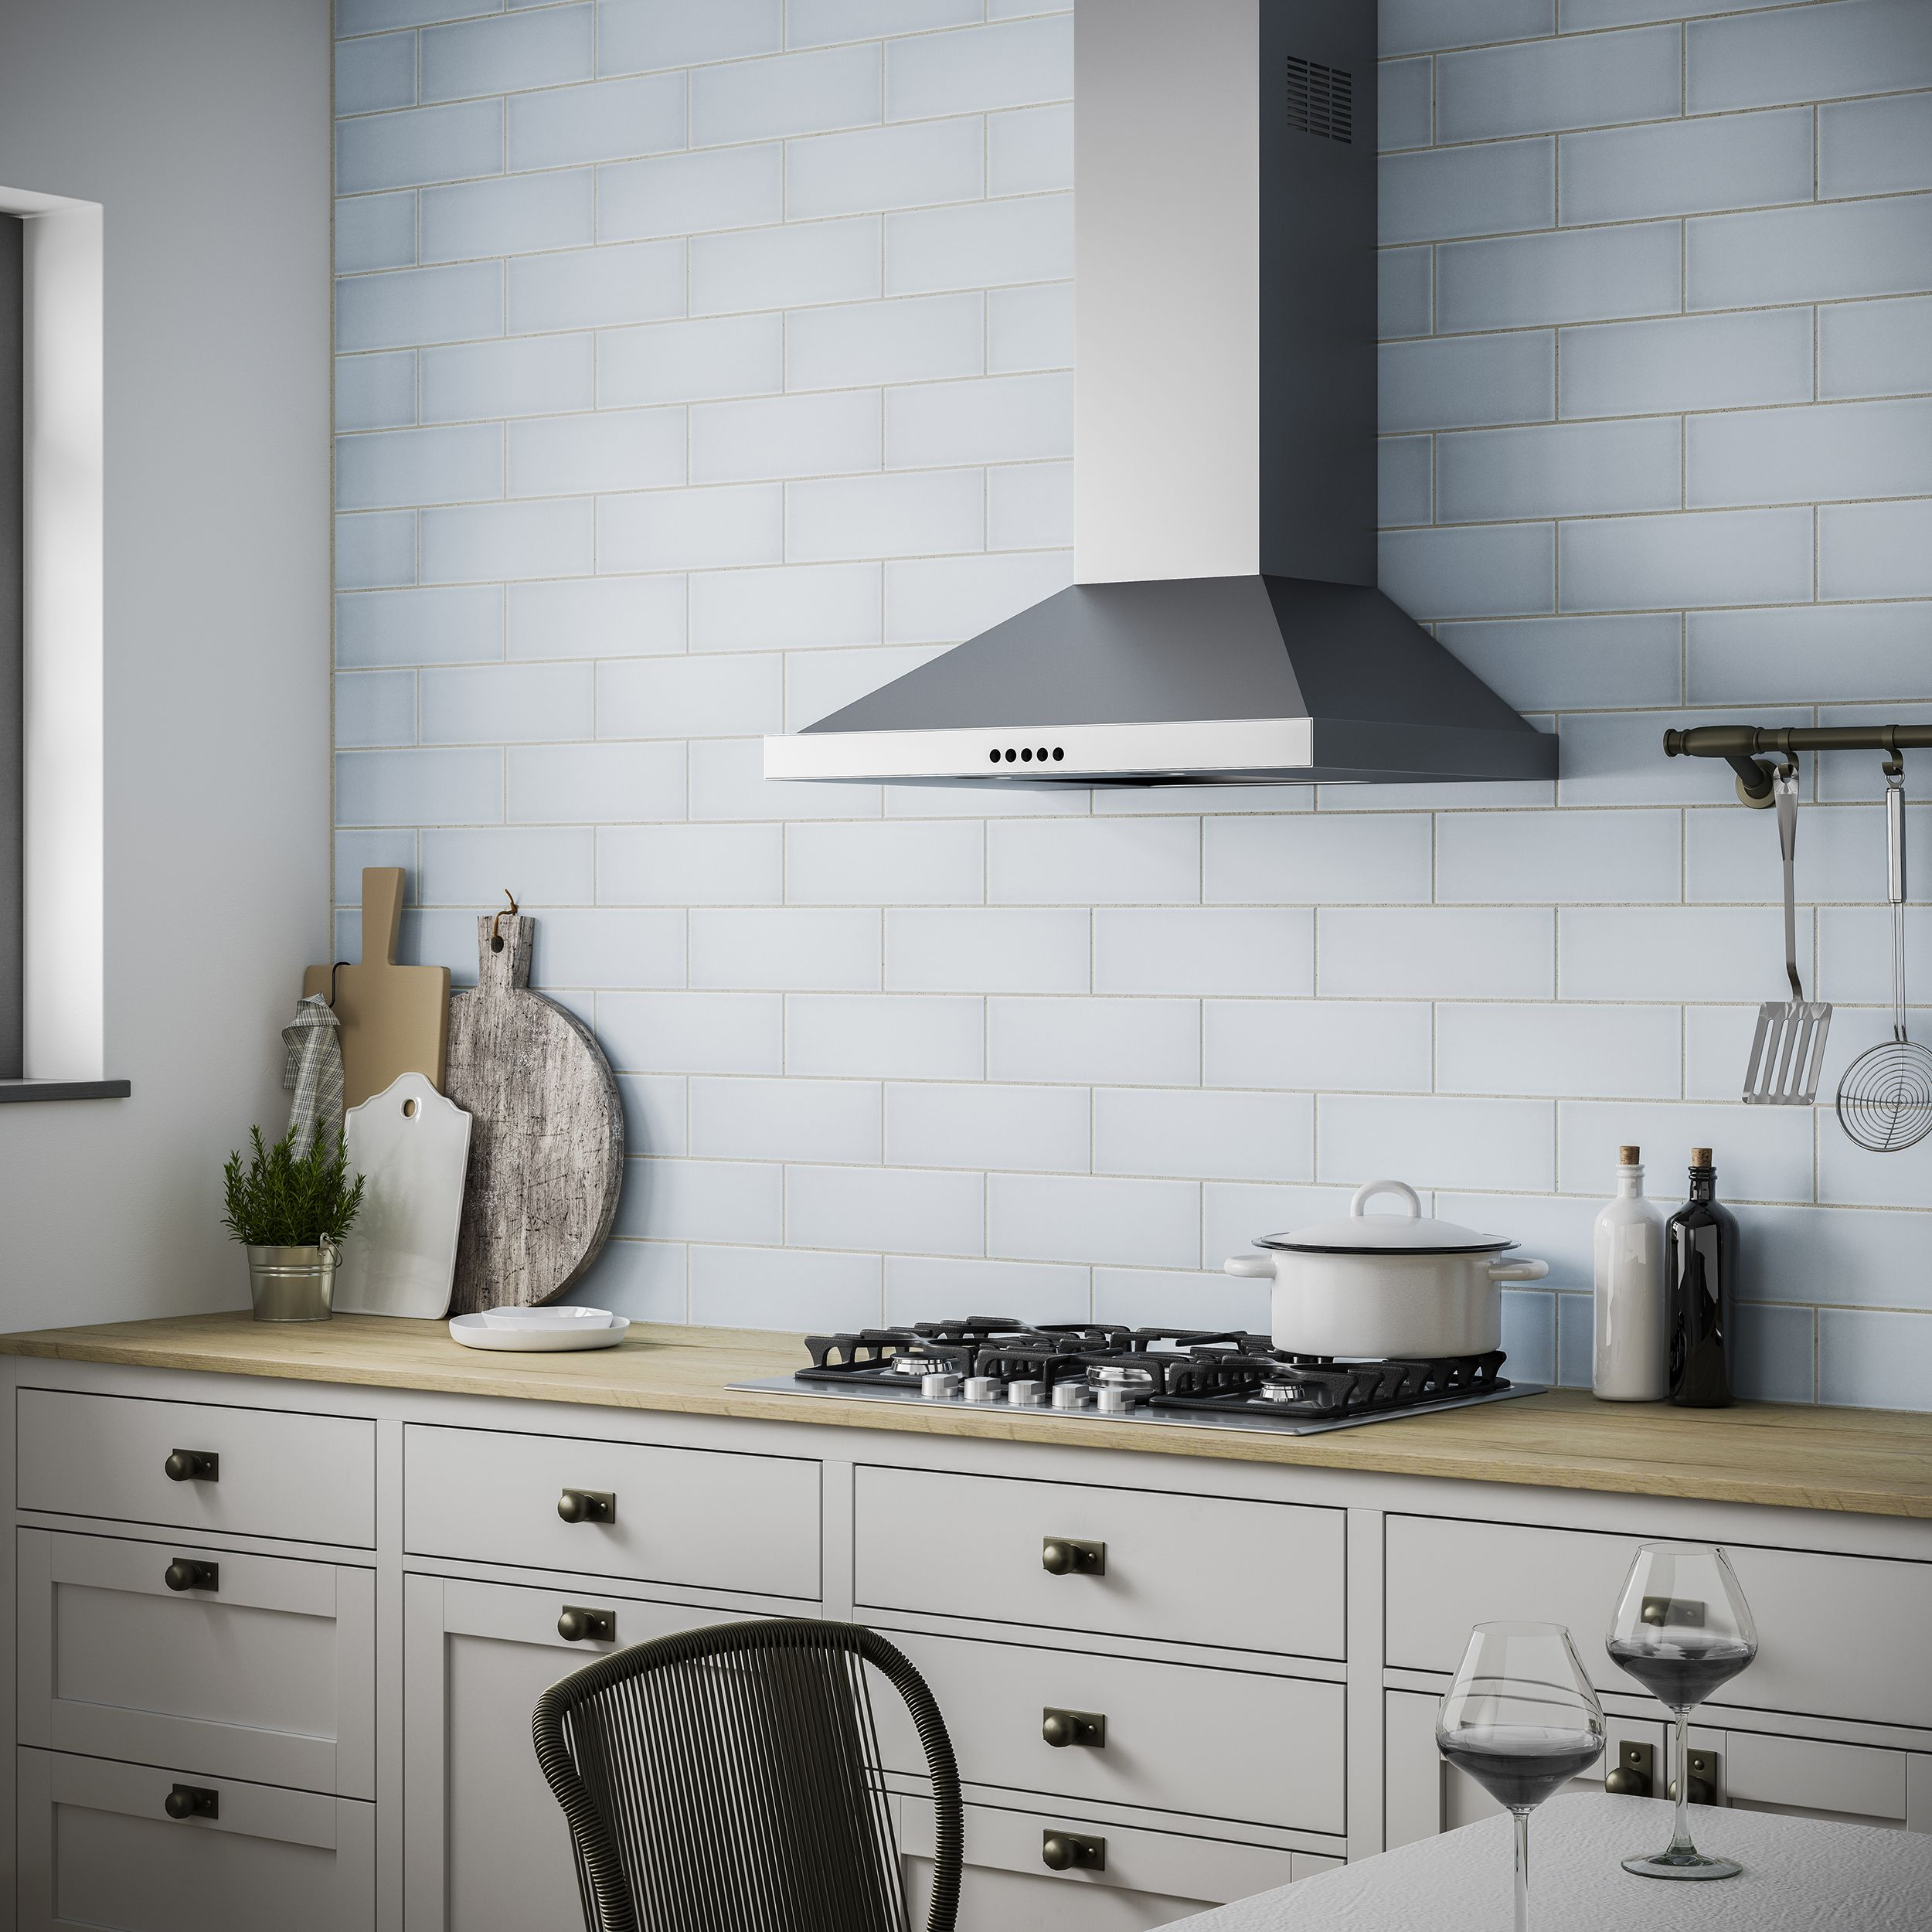 Chalkwell Duck Egg Blue 100x300 In 2020 Wall Tiles Duck Egg Blue Ceramic Wall Tiles